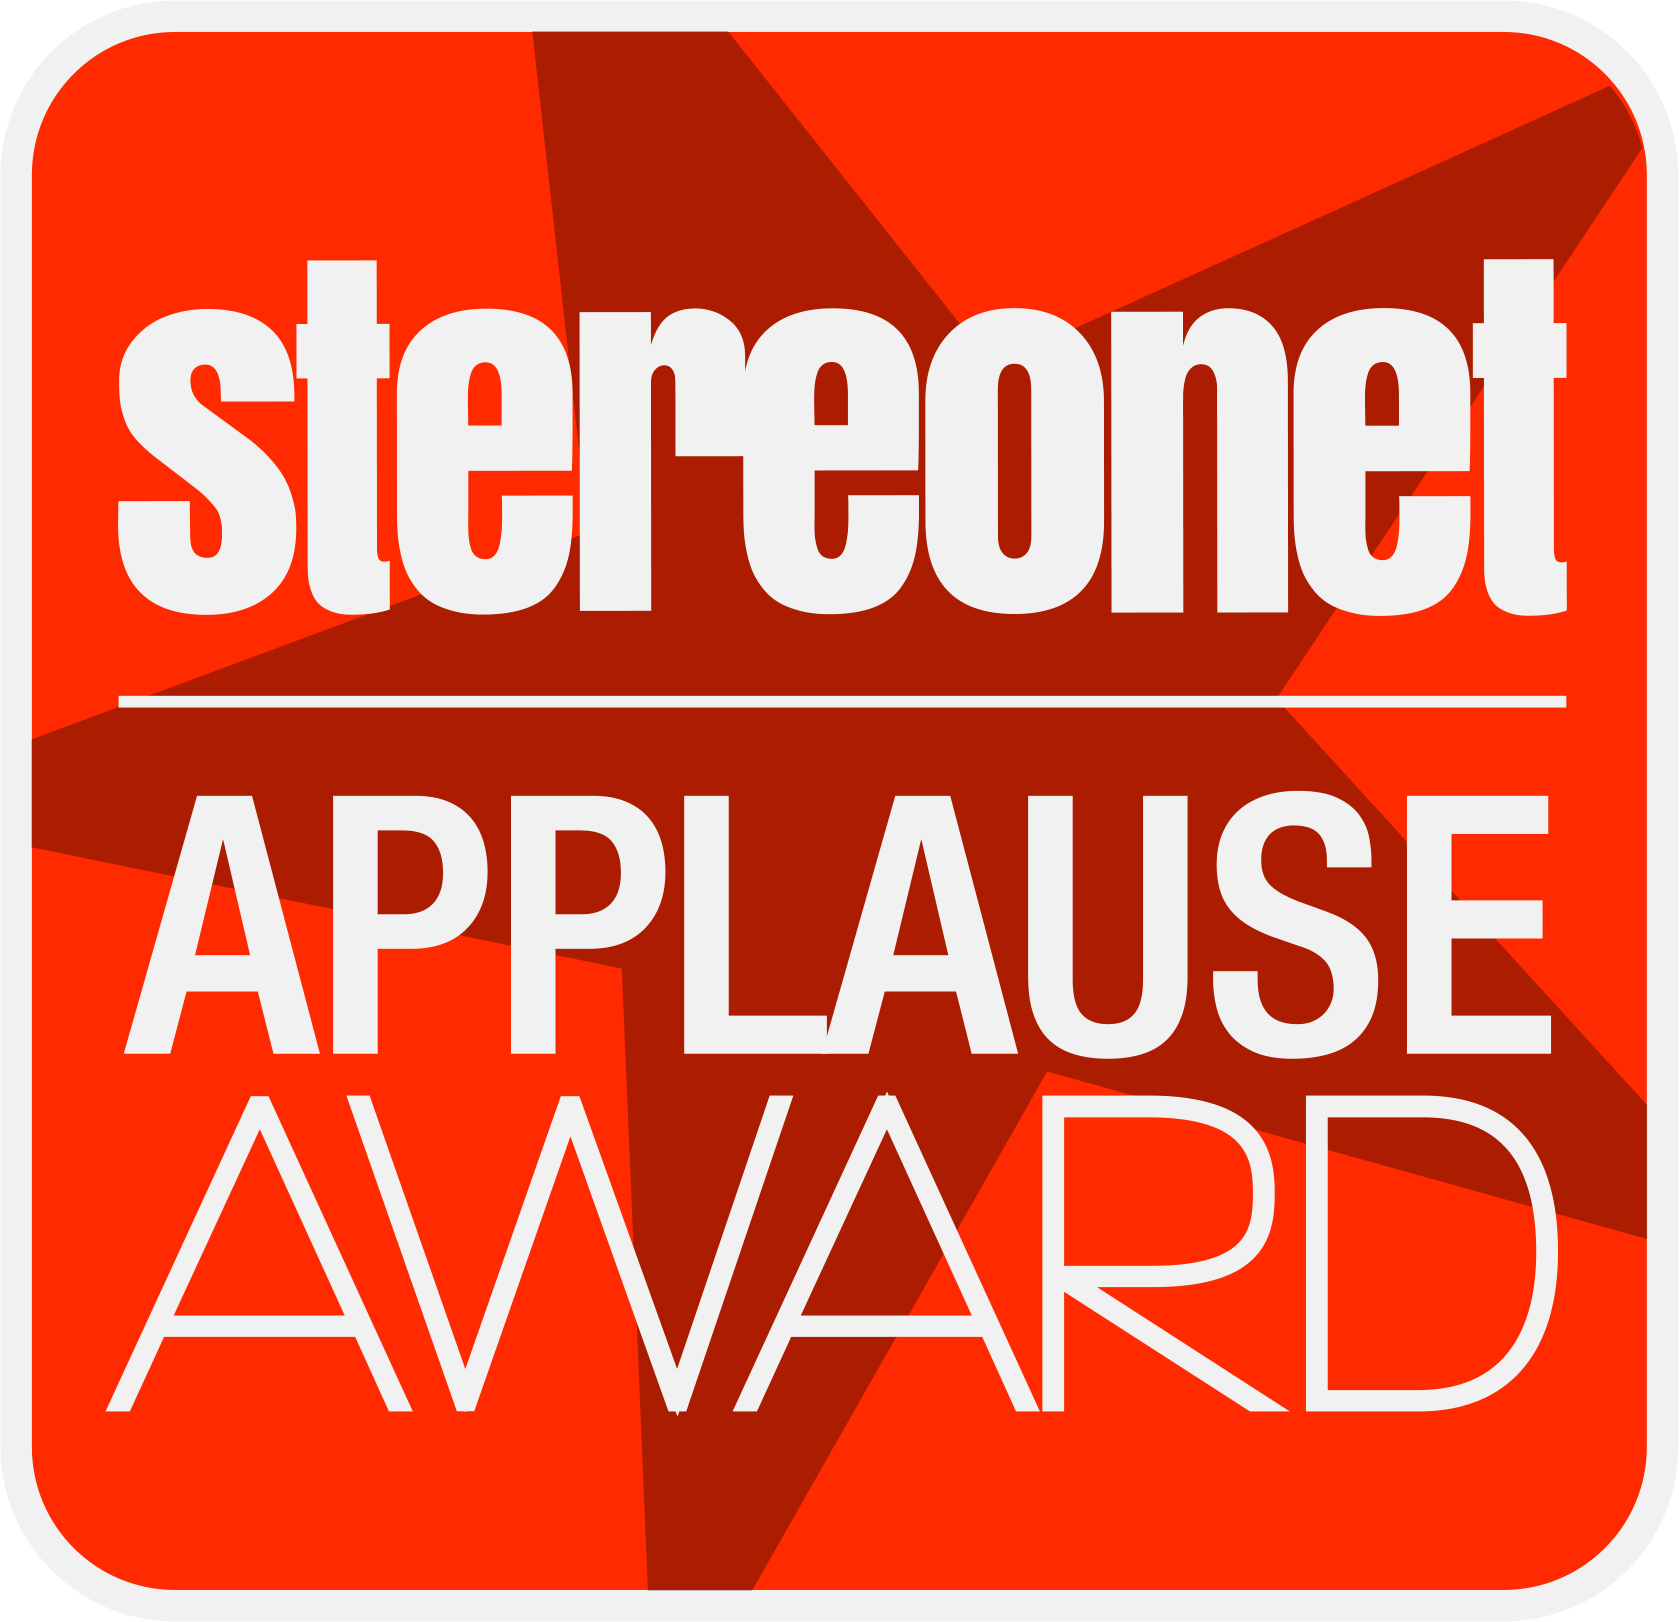 ATC Applause Award